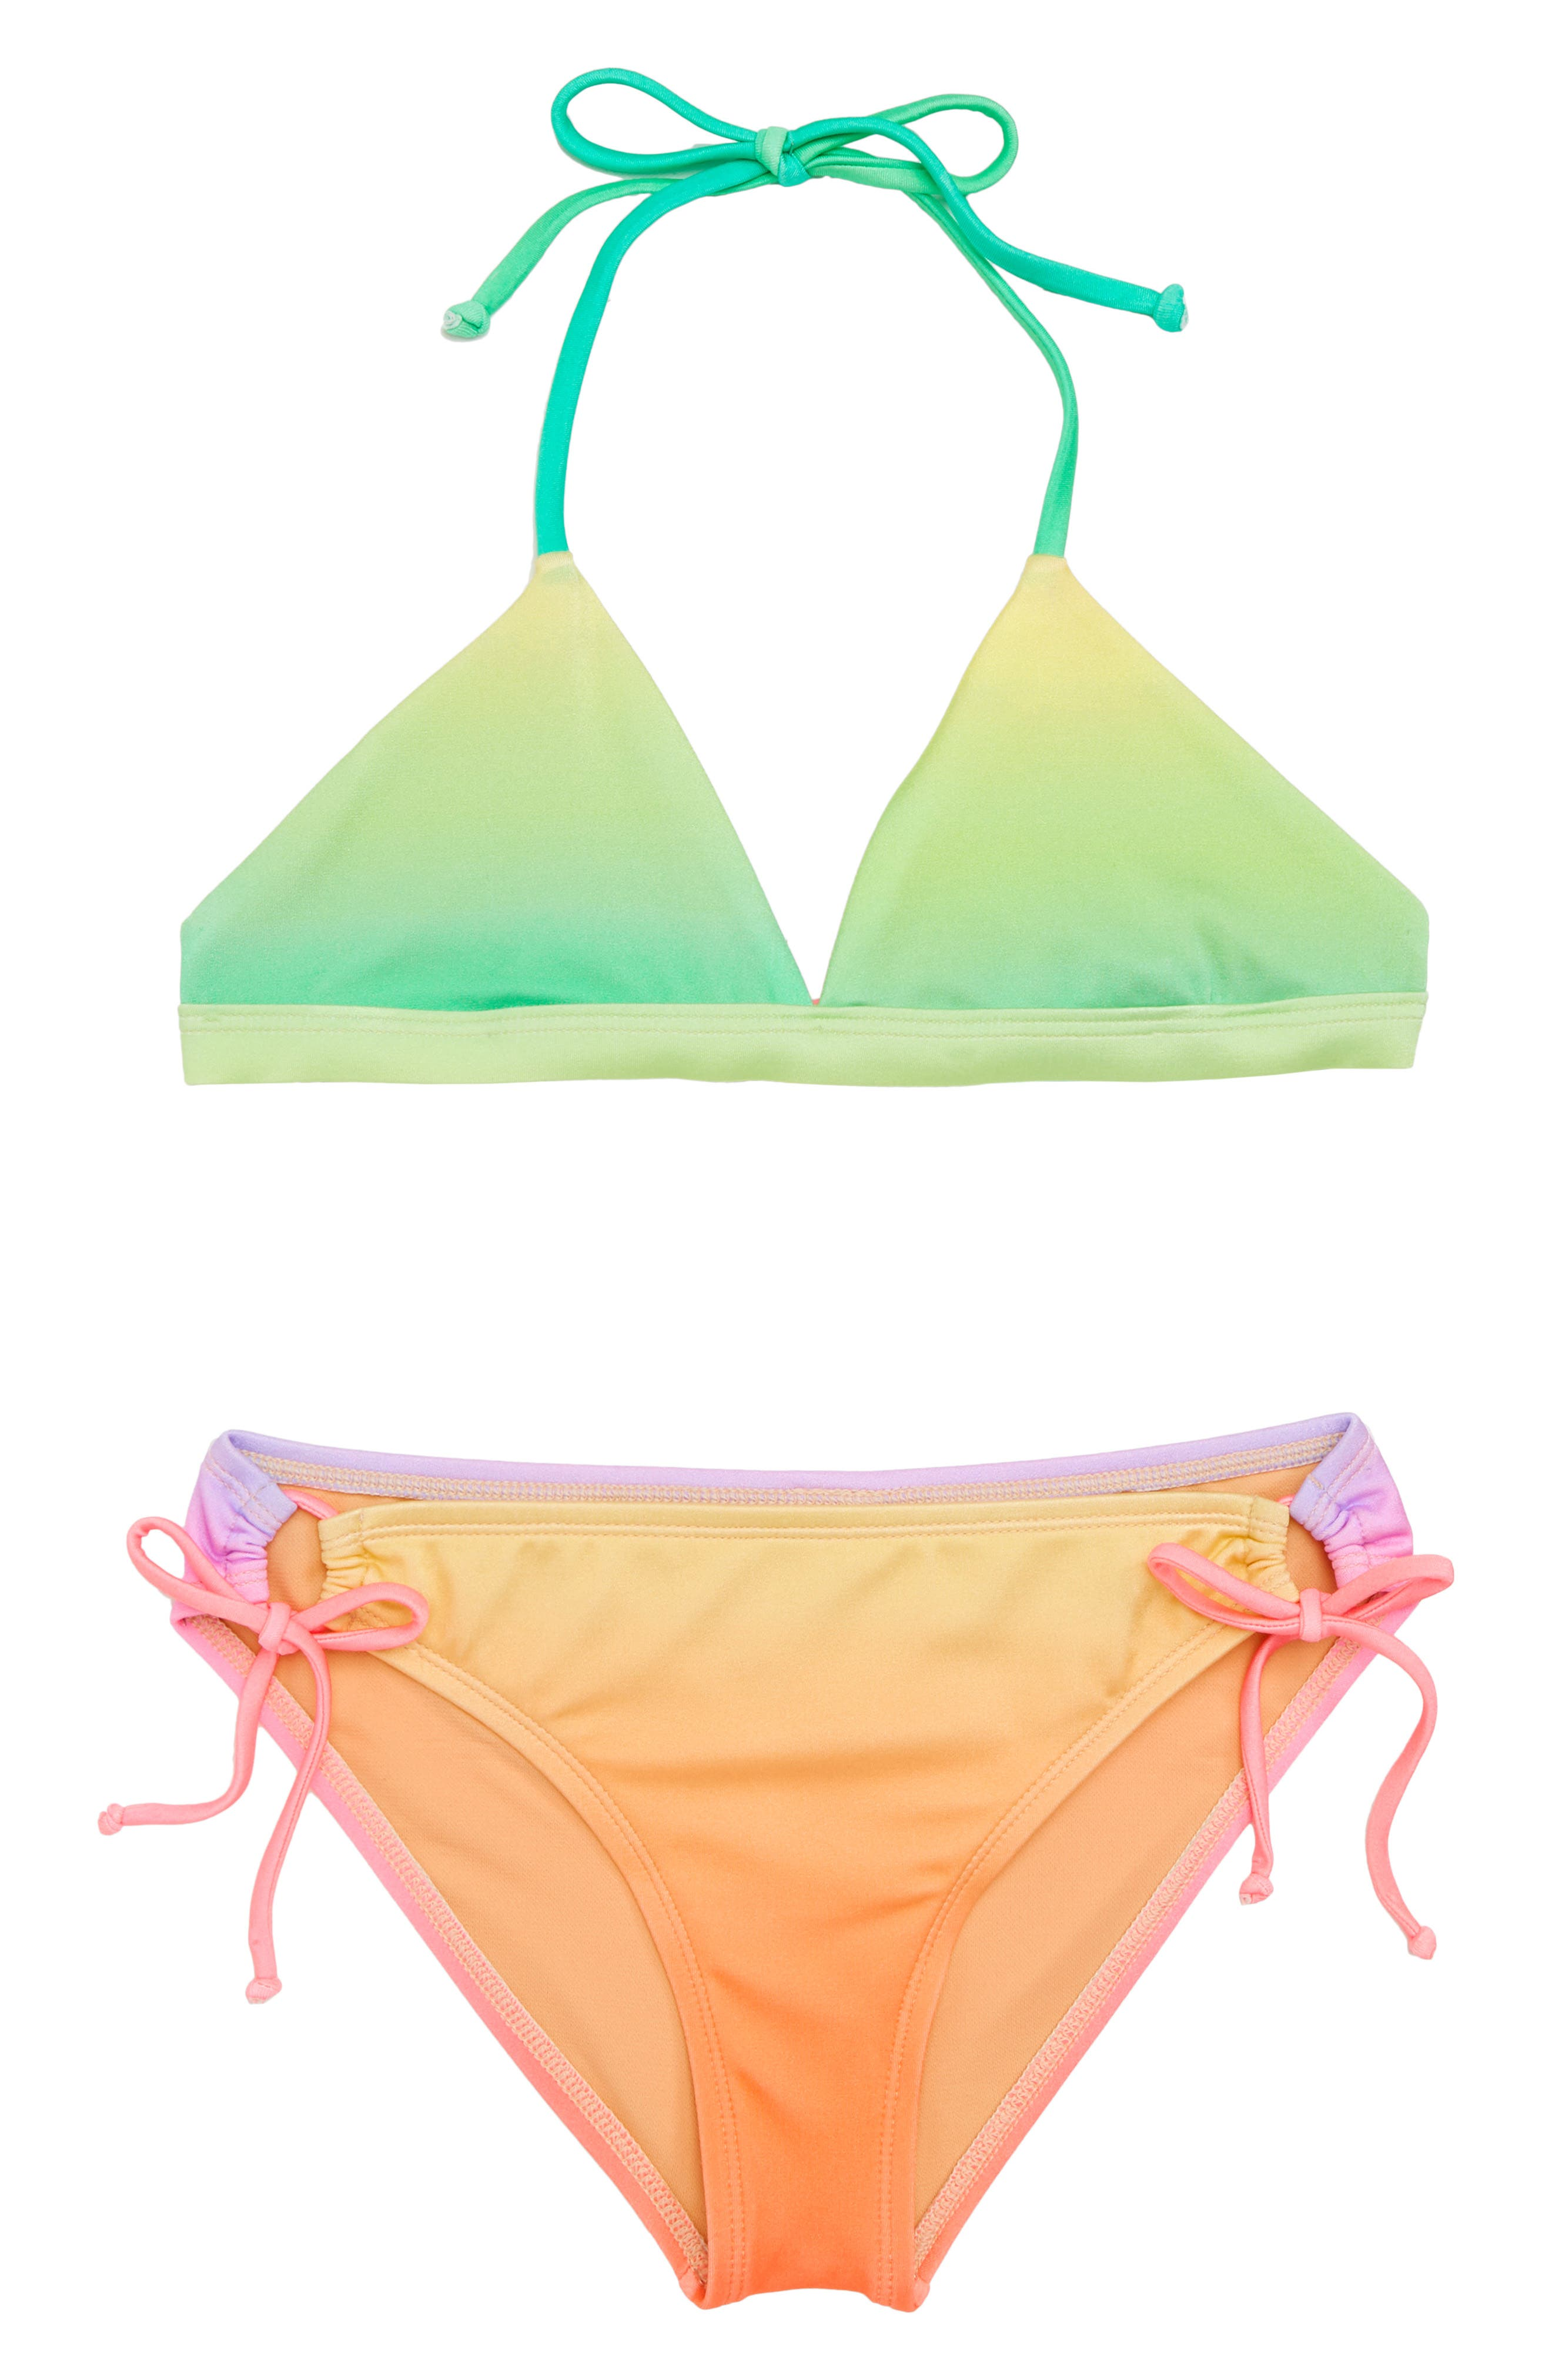 Teen Spirit Triangle Two-Piece Swimsuit,                         Main,                         color, Blue/ Green